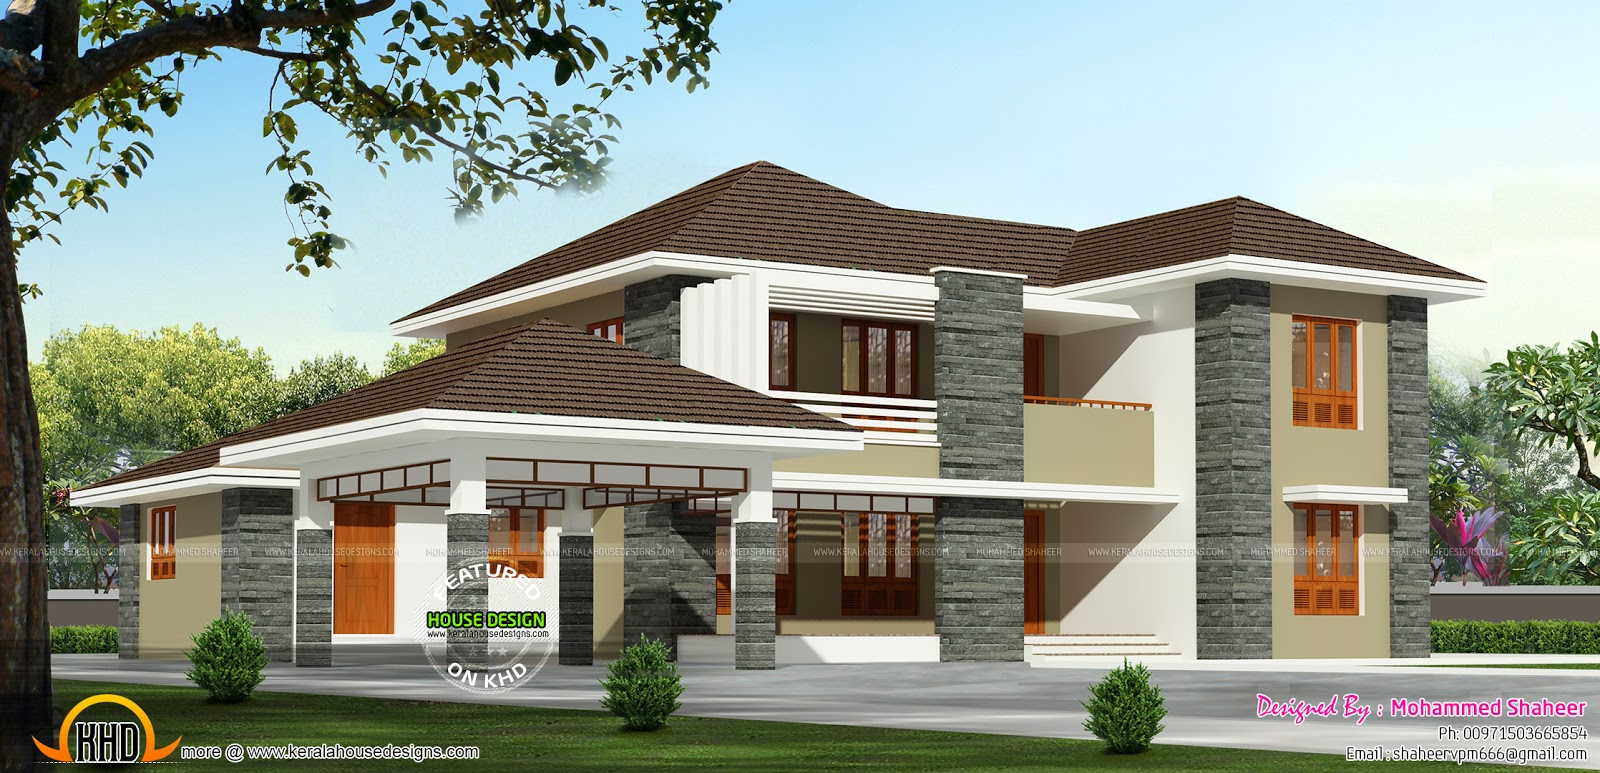 2000 square foot house kerala home design and floor plans House designs 2000 square feet